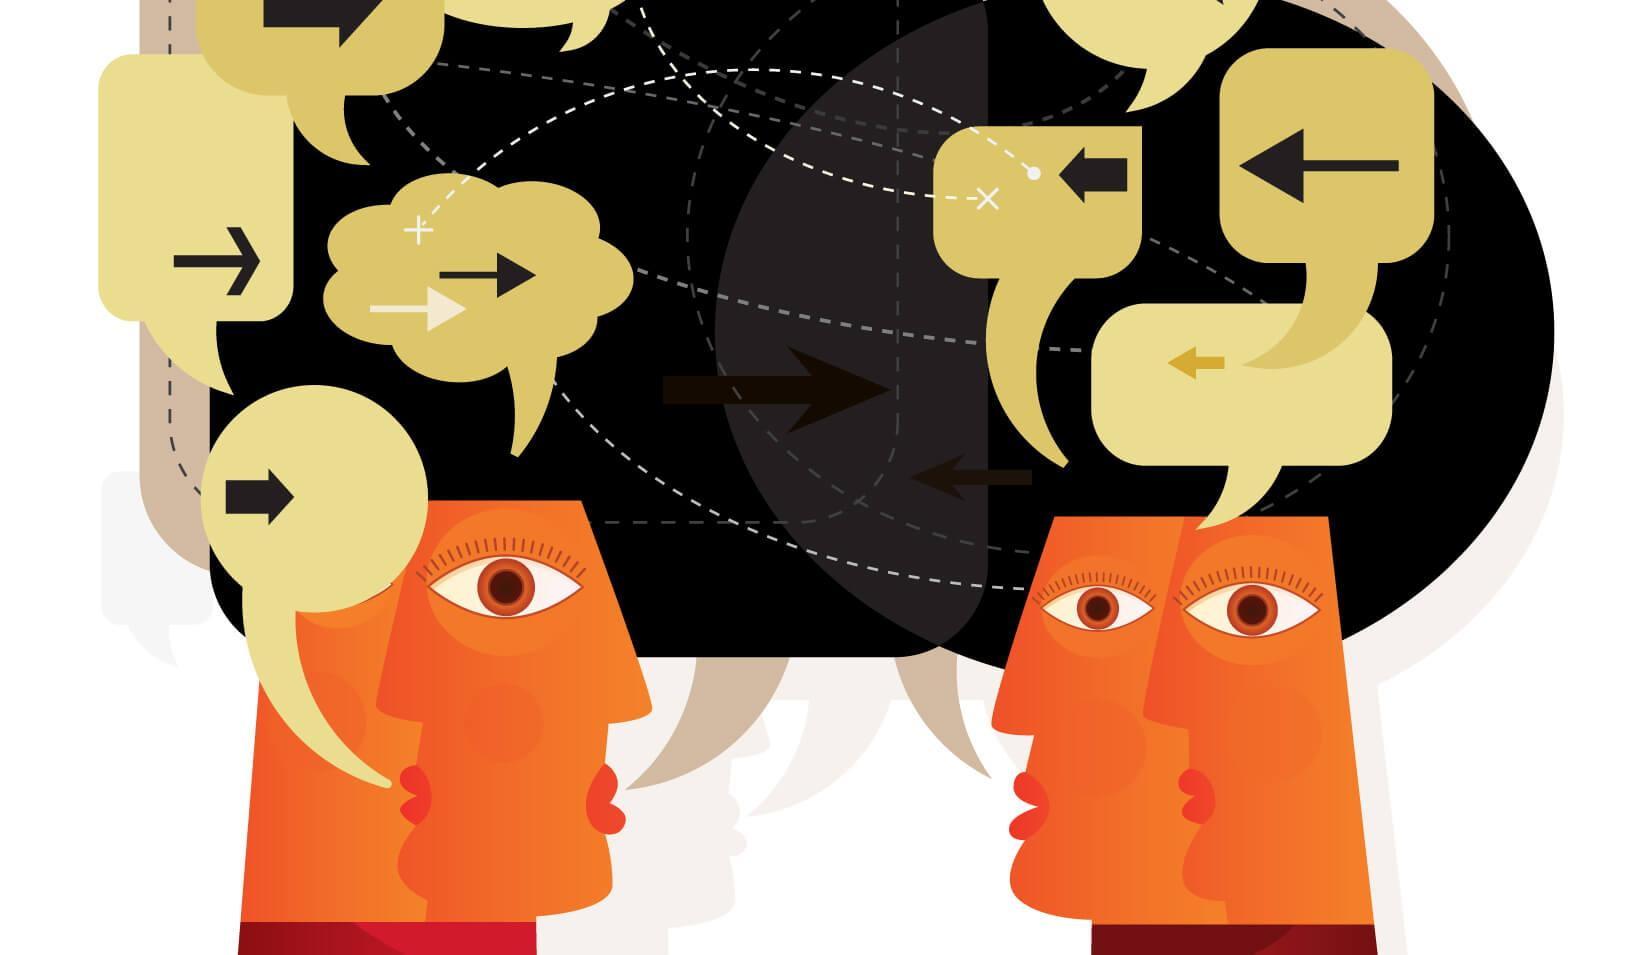 Illustration of heads communicating ideas